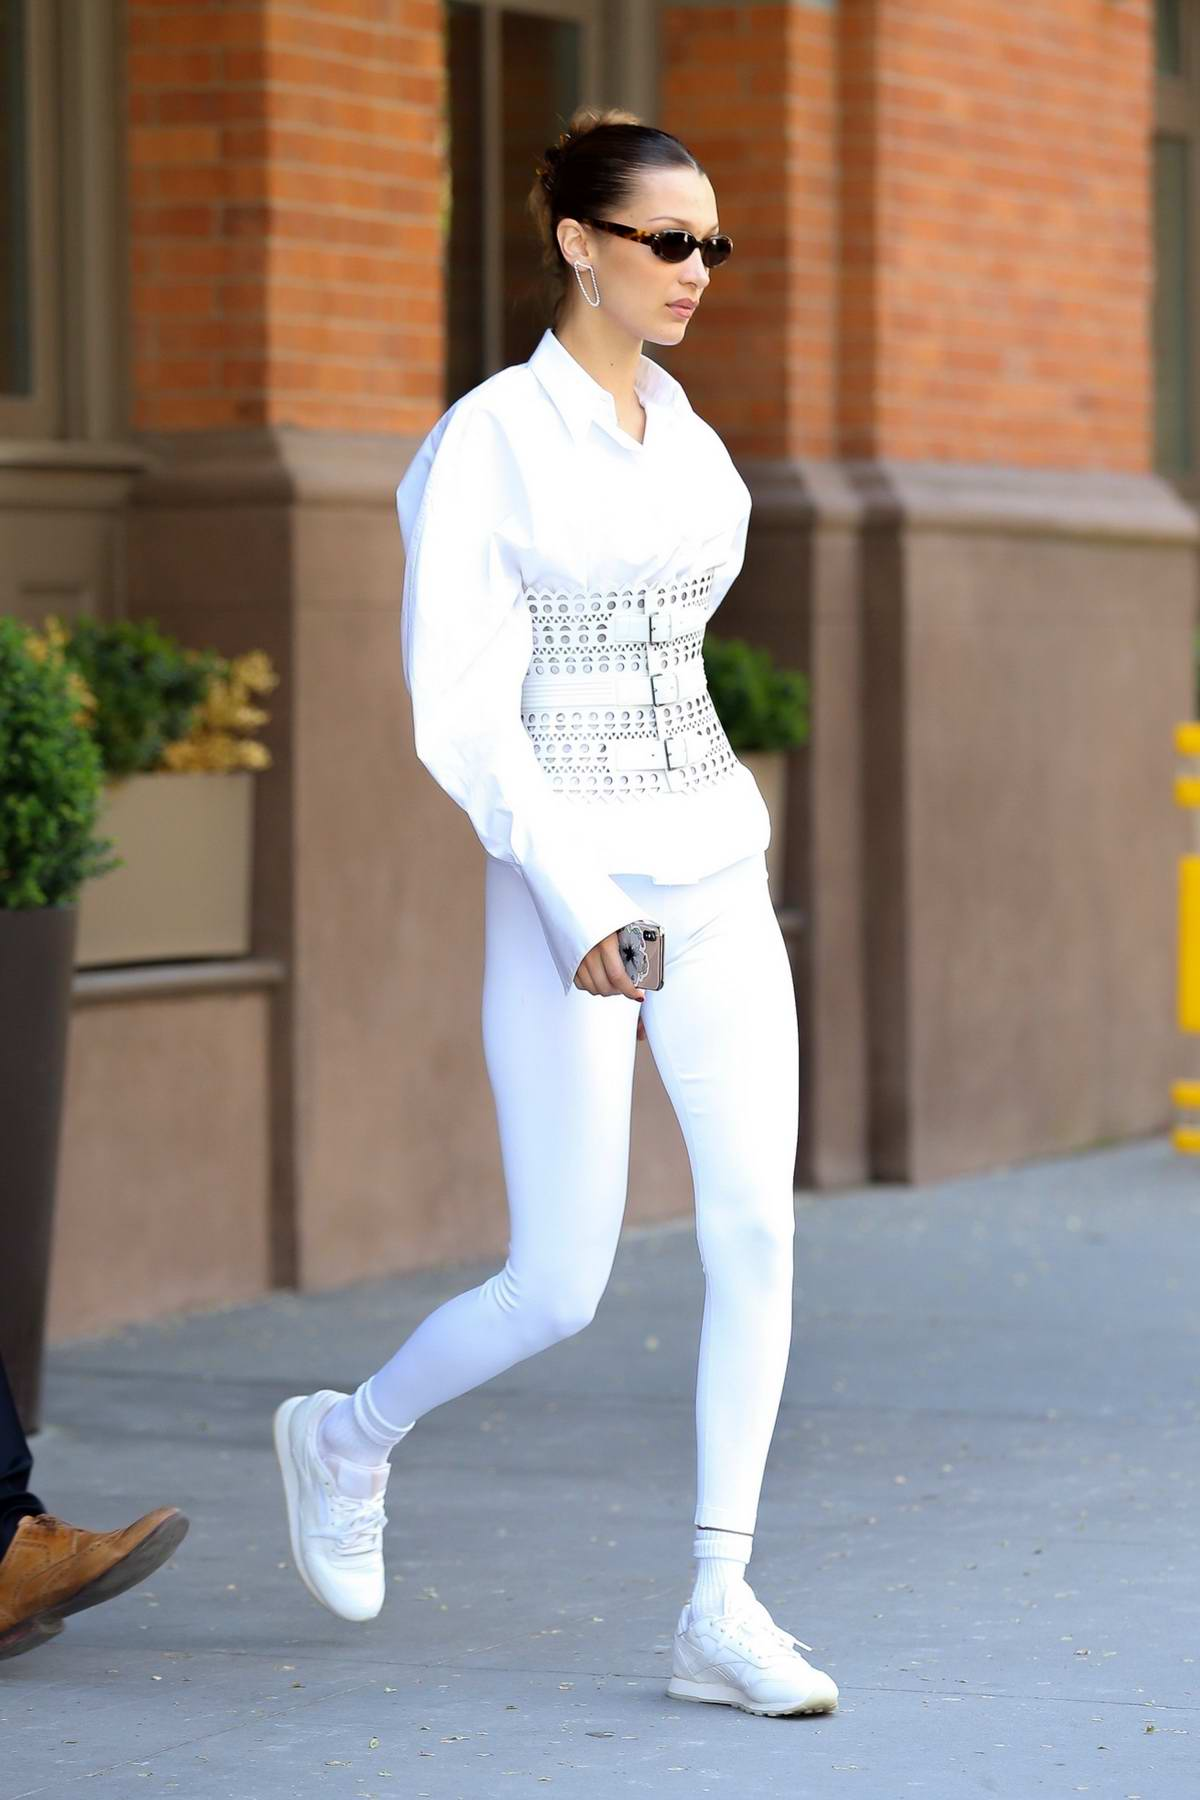 Bella Hadid dons all white as she heads out in style in New York City